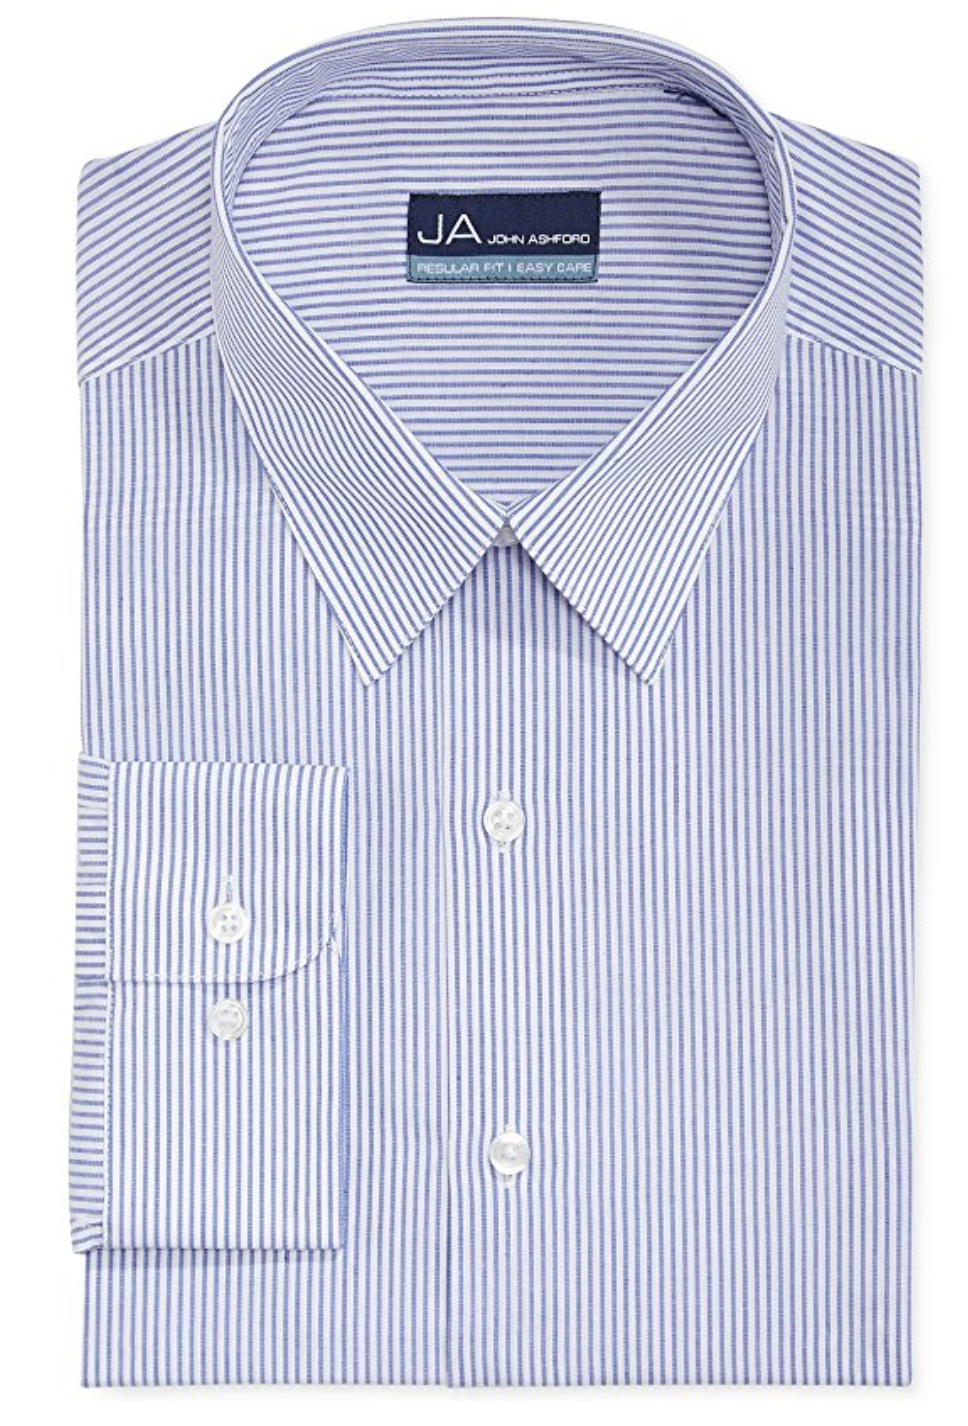 John Ashford Mens Regular Fit Striped Dress Shirt Blue, 16 (32/33)